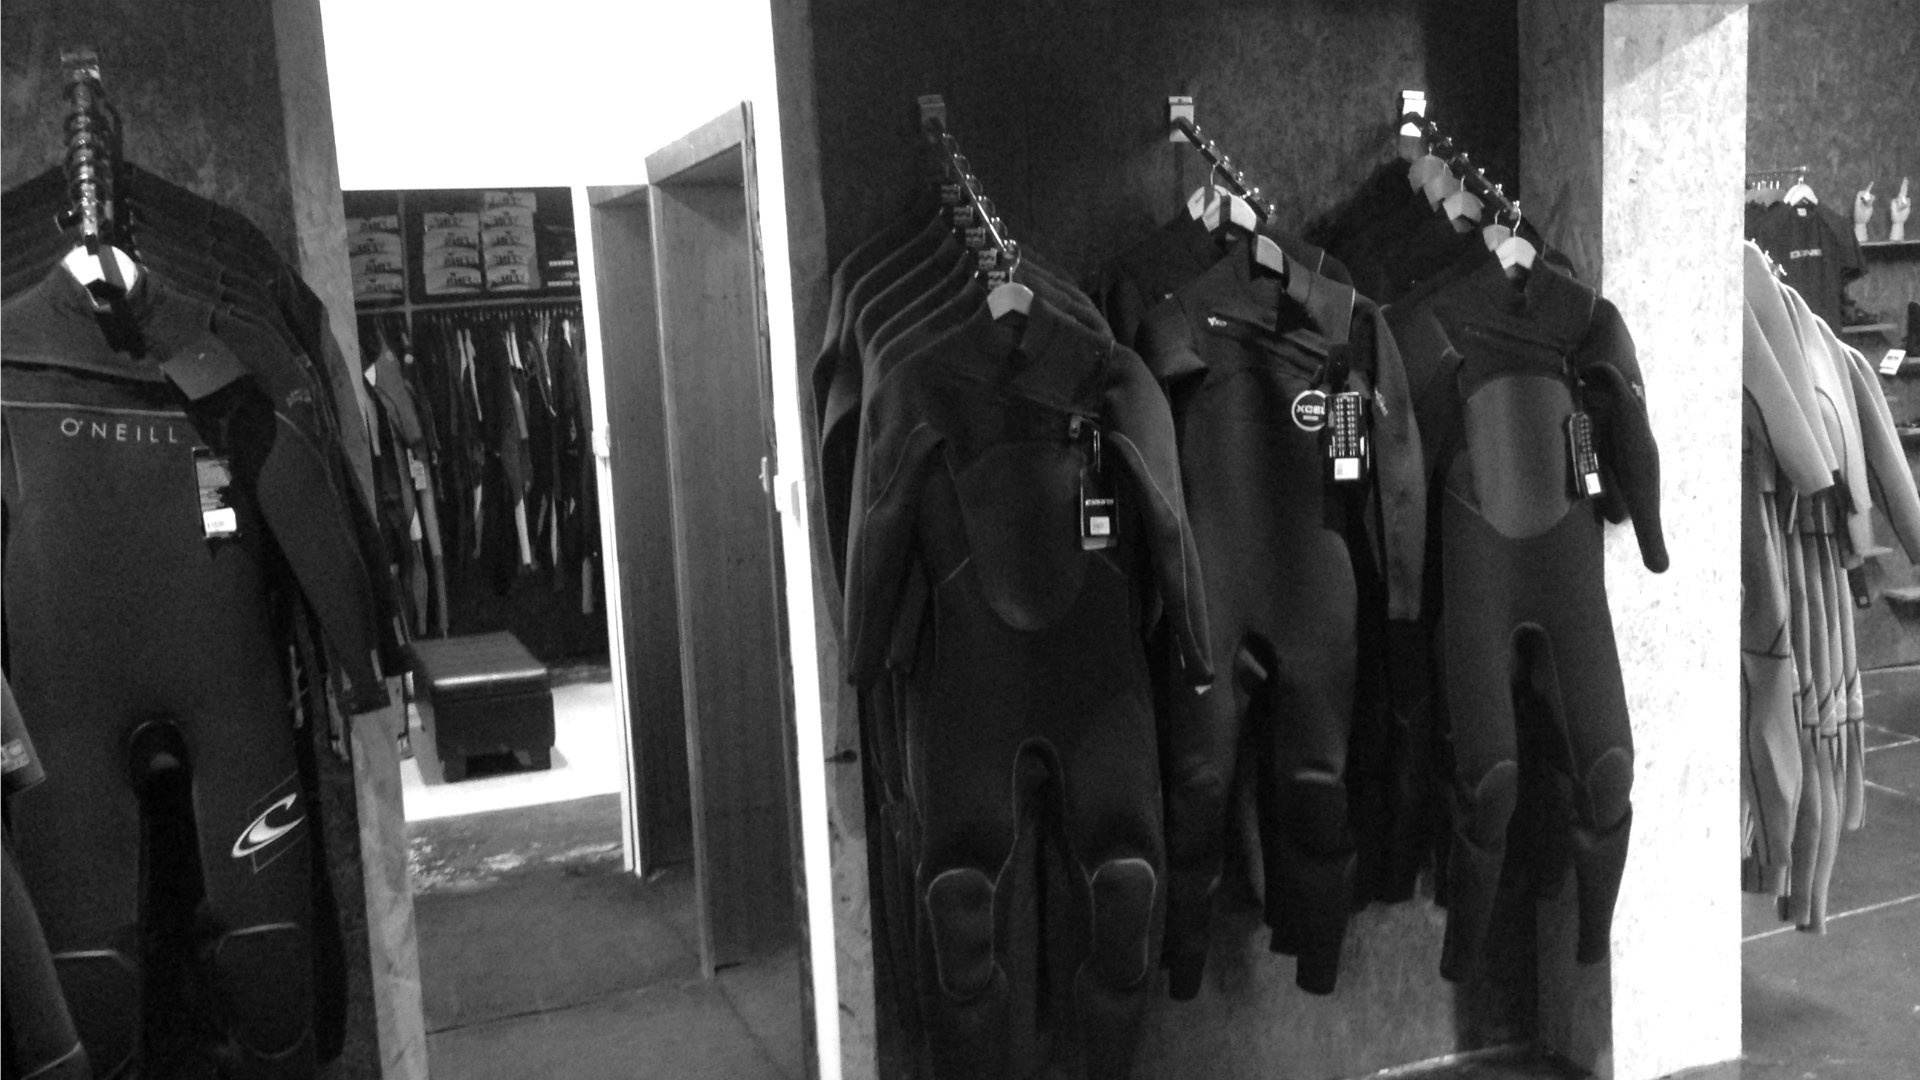 The Wetsuit Guide